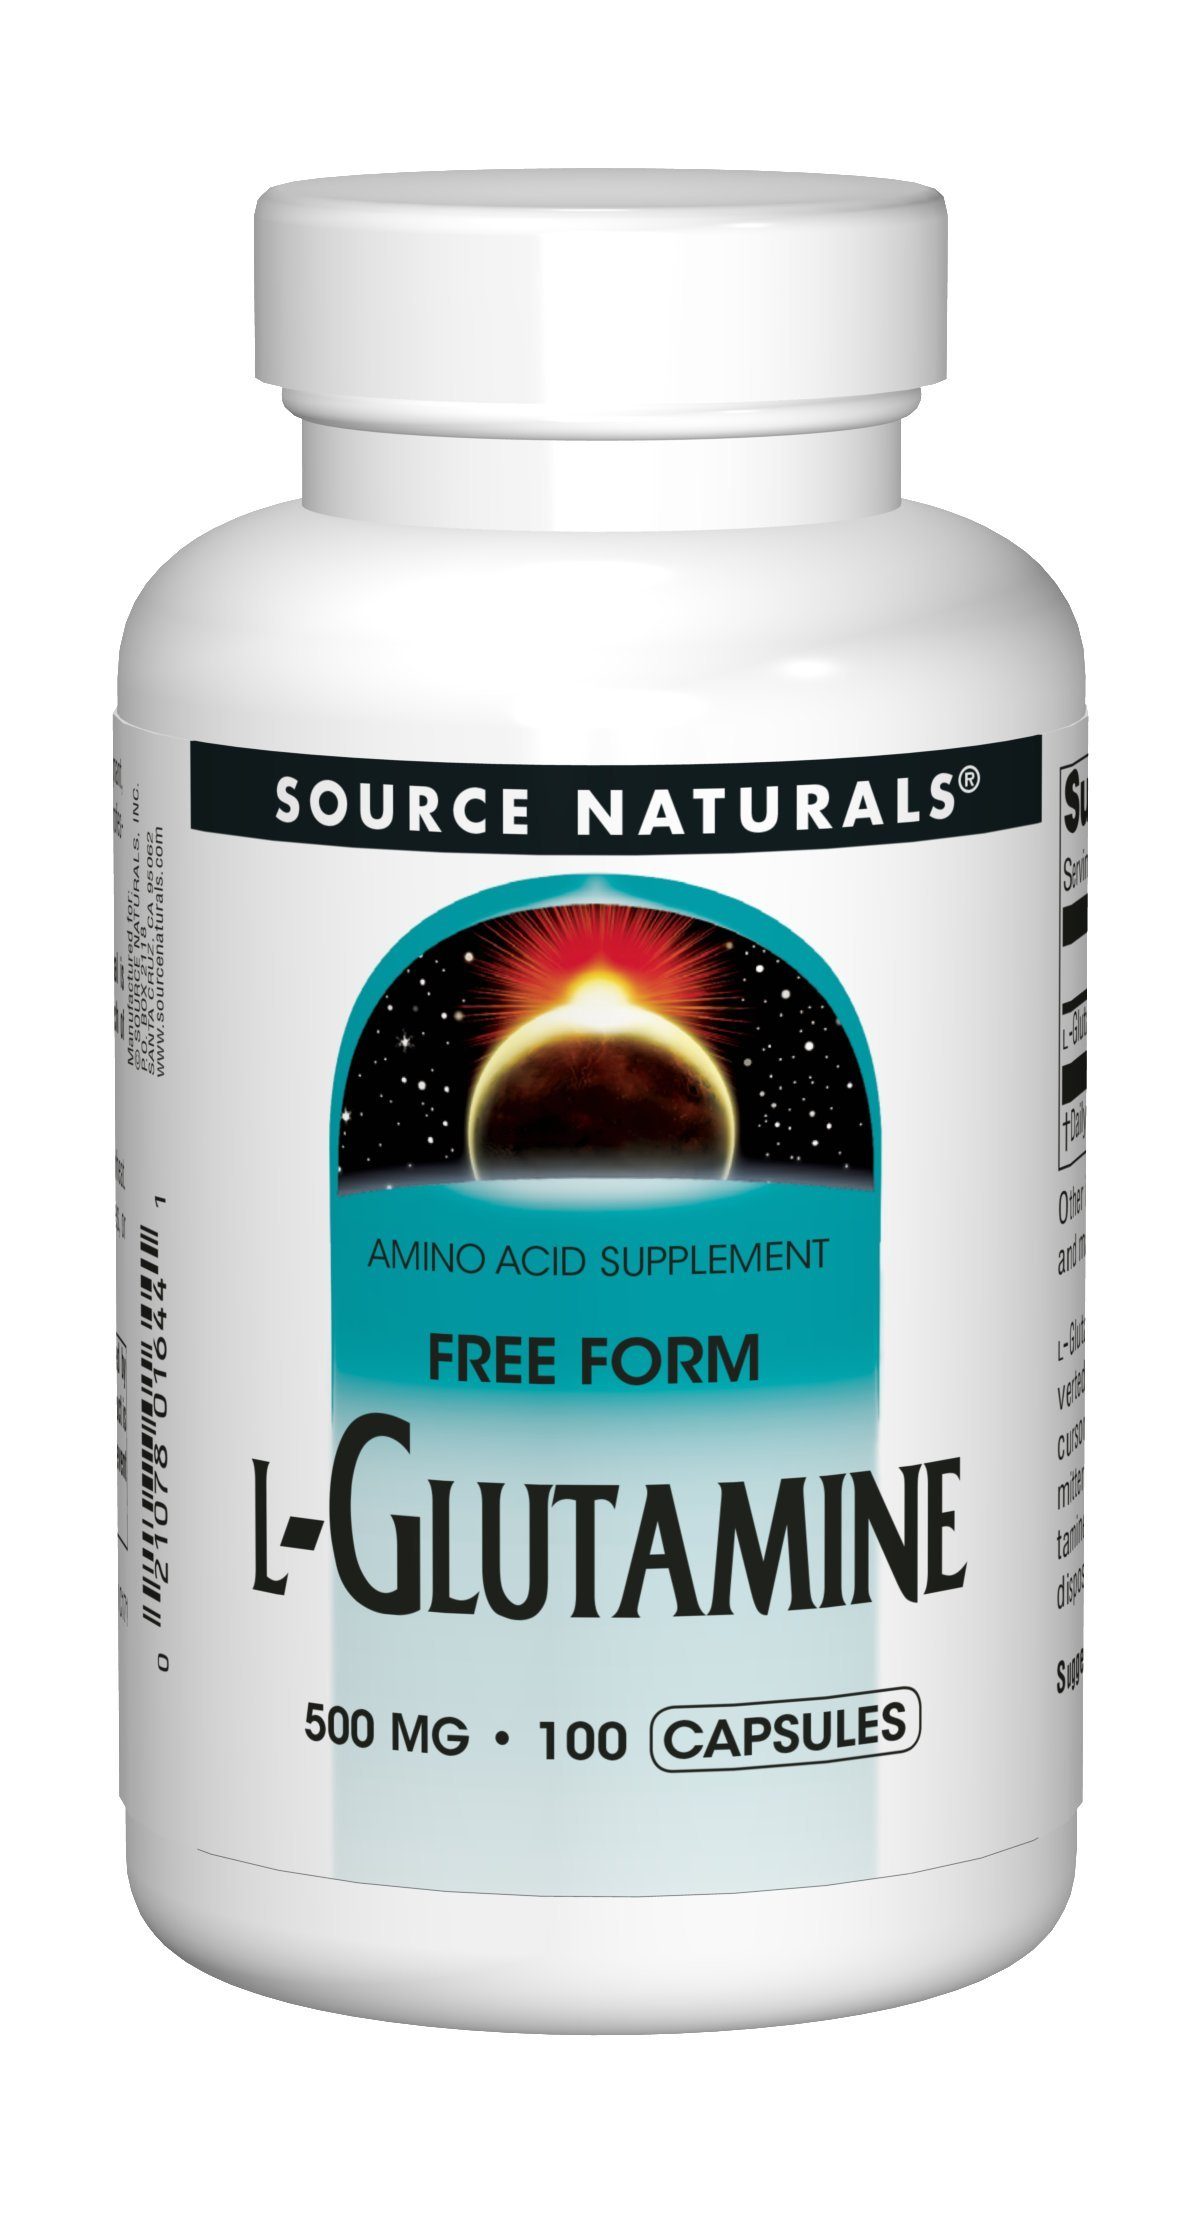 Source Naturals L-Glutamine - Free Form Amino Acid That Supports Metabolic Energy - 100 Capsules by Source Naturals